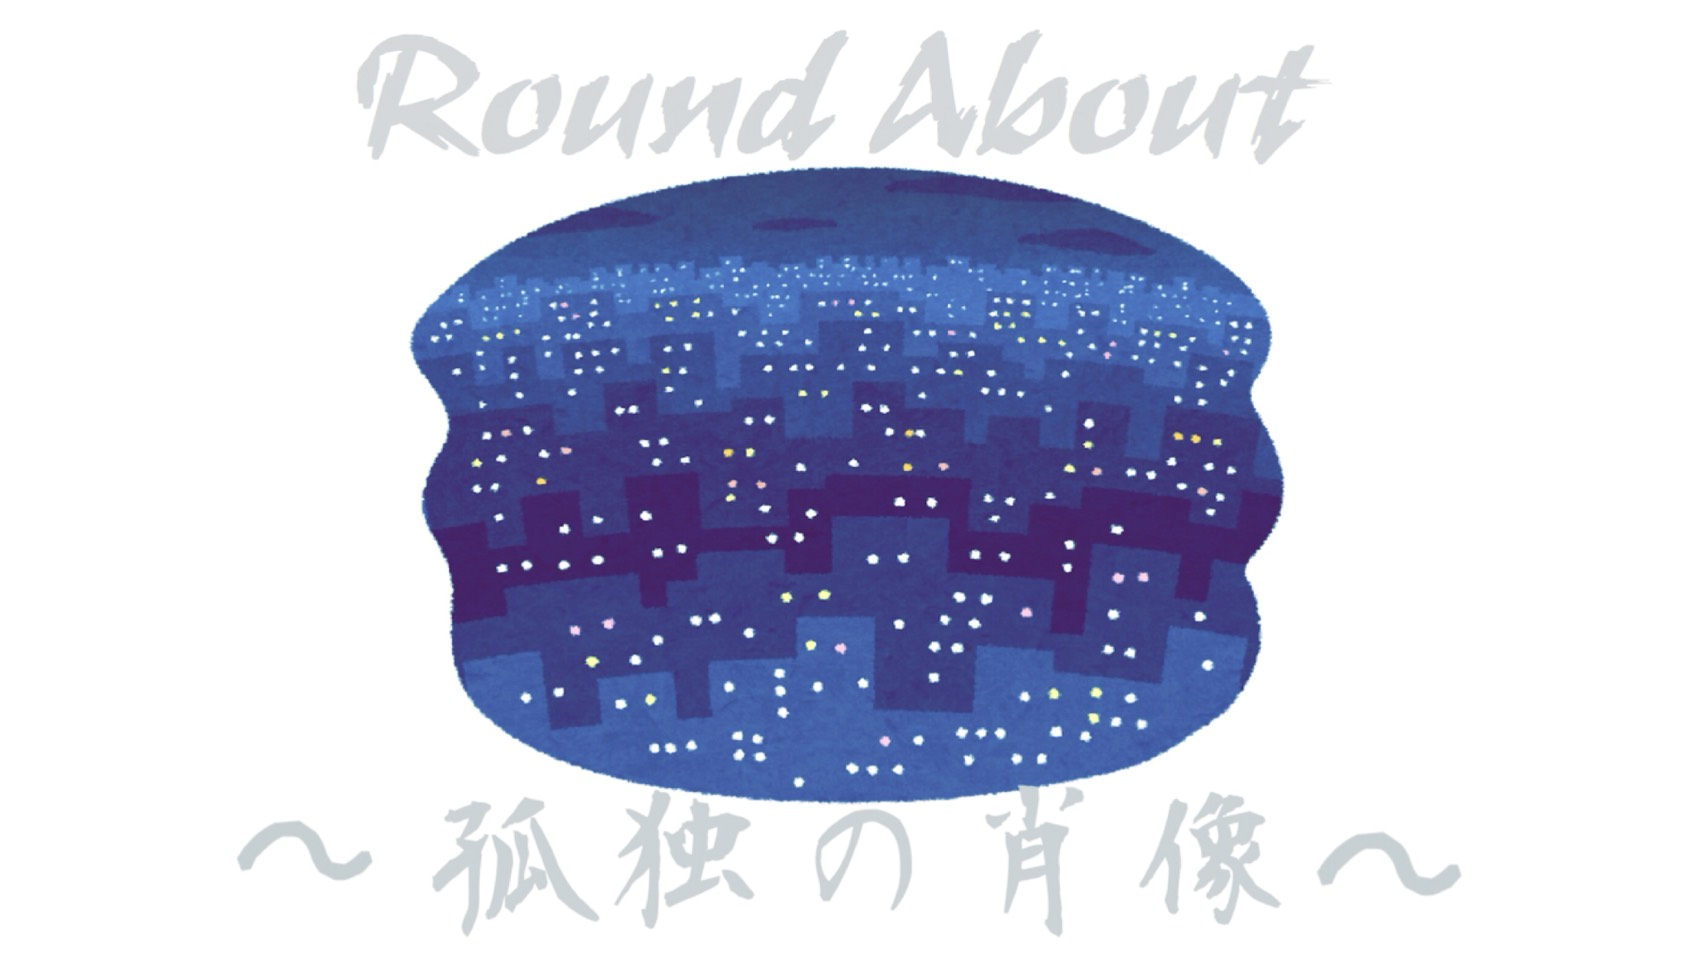 「Round About 〜孤独の肖像〜」のイメージ